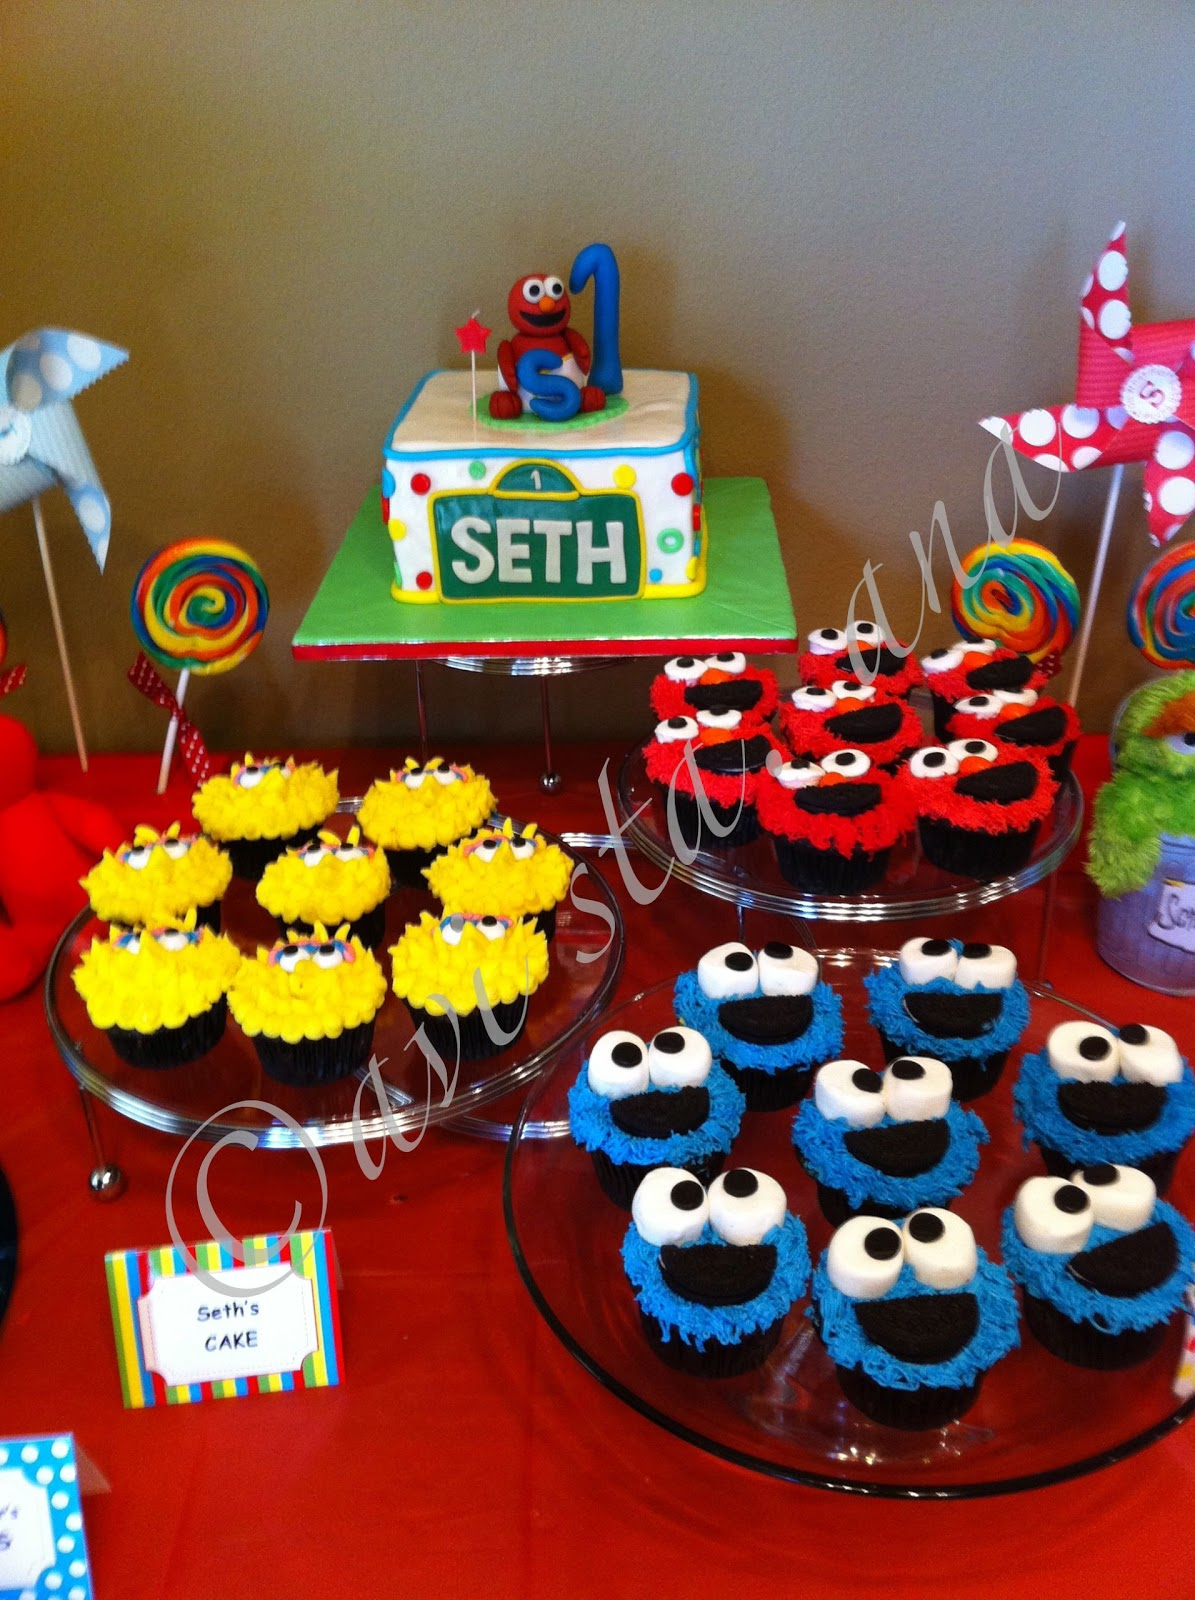 A Lot of Sugar Sesame Street Cake